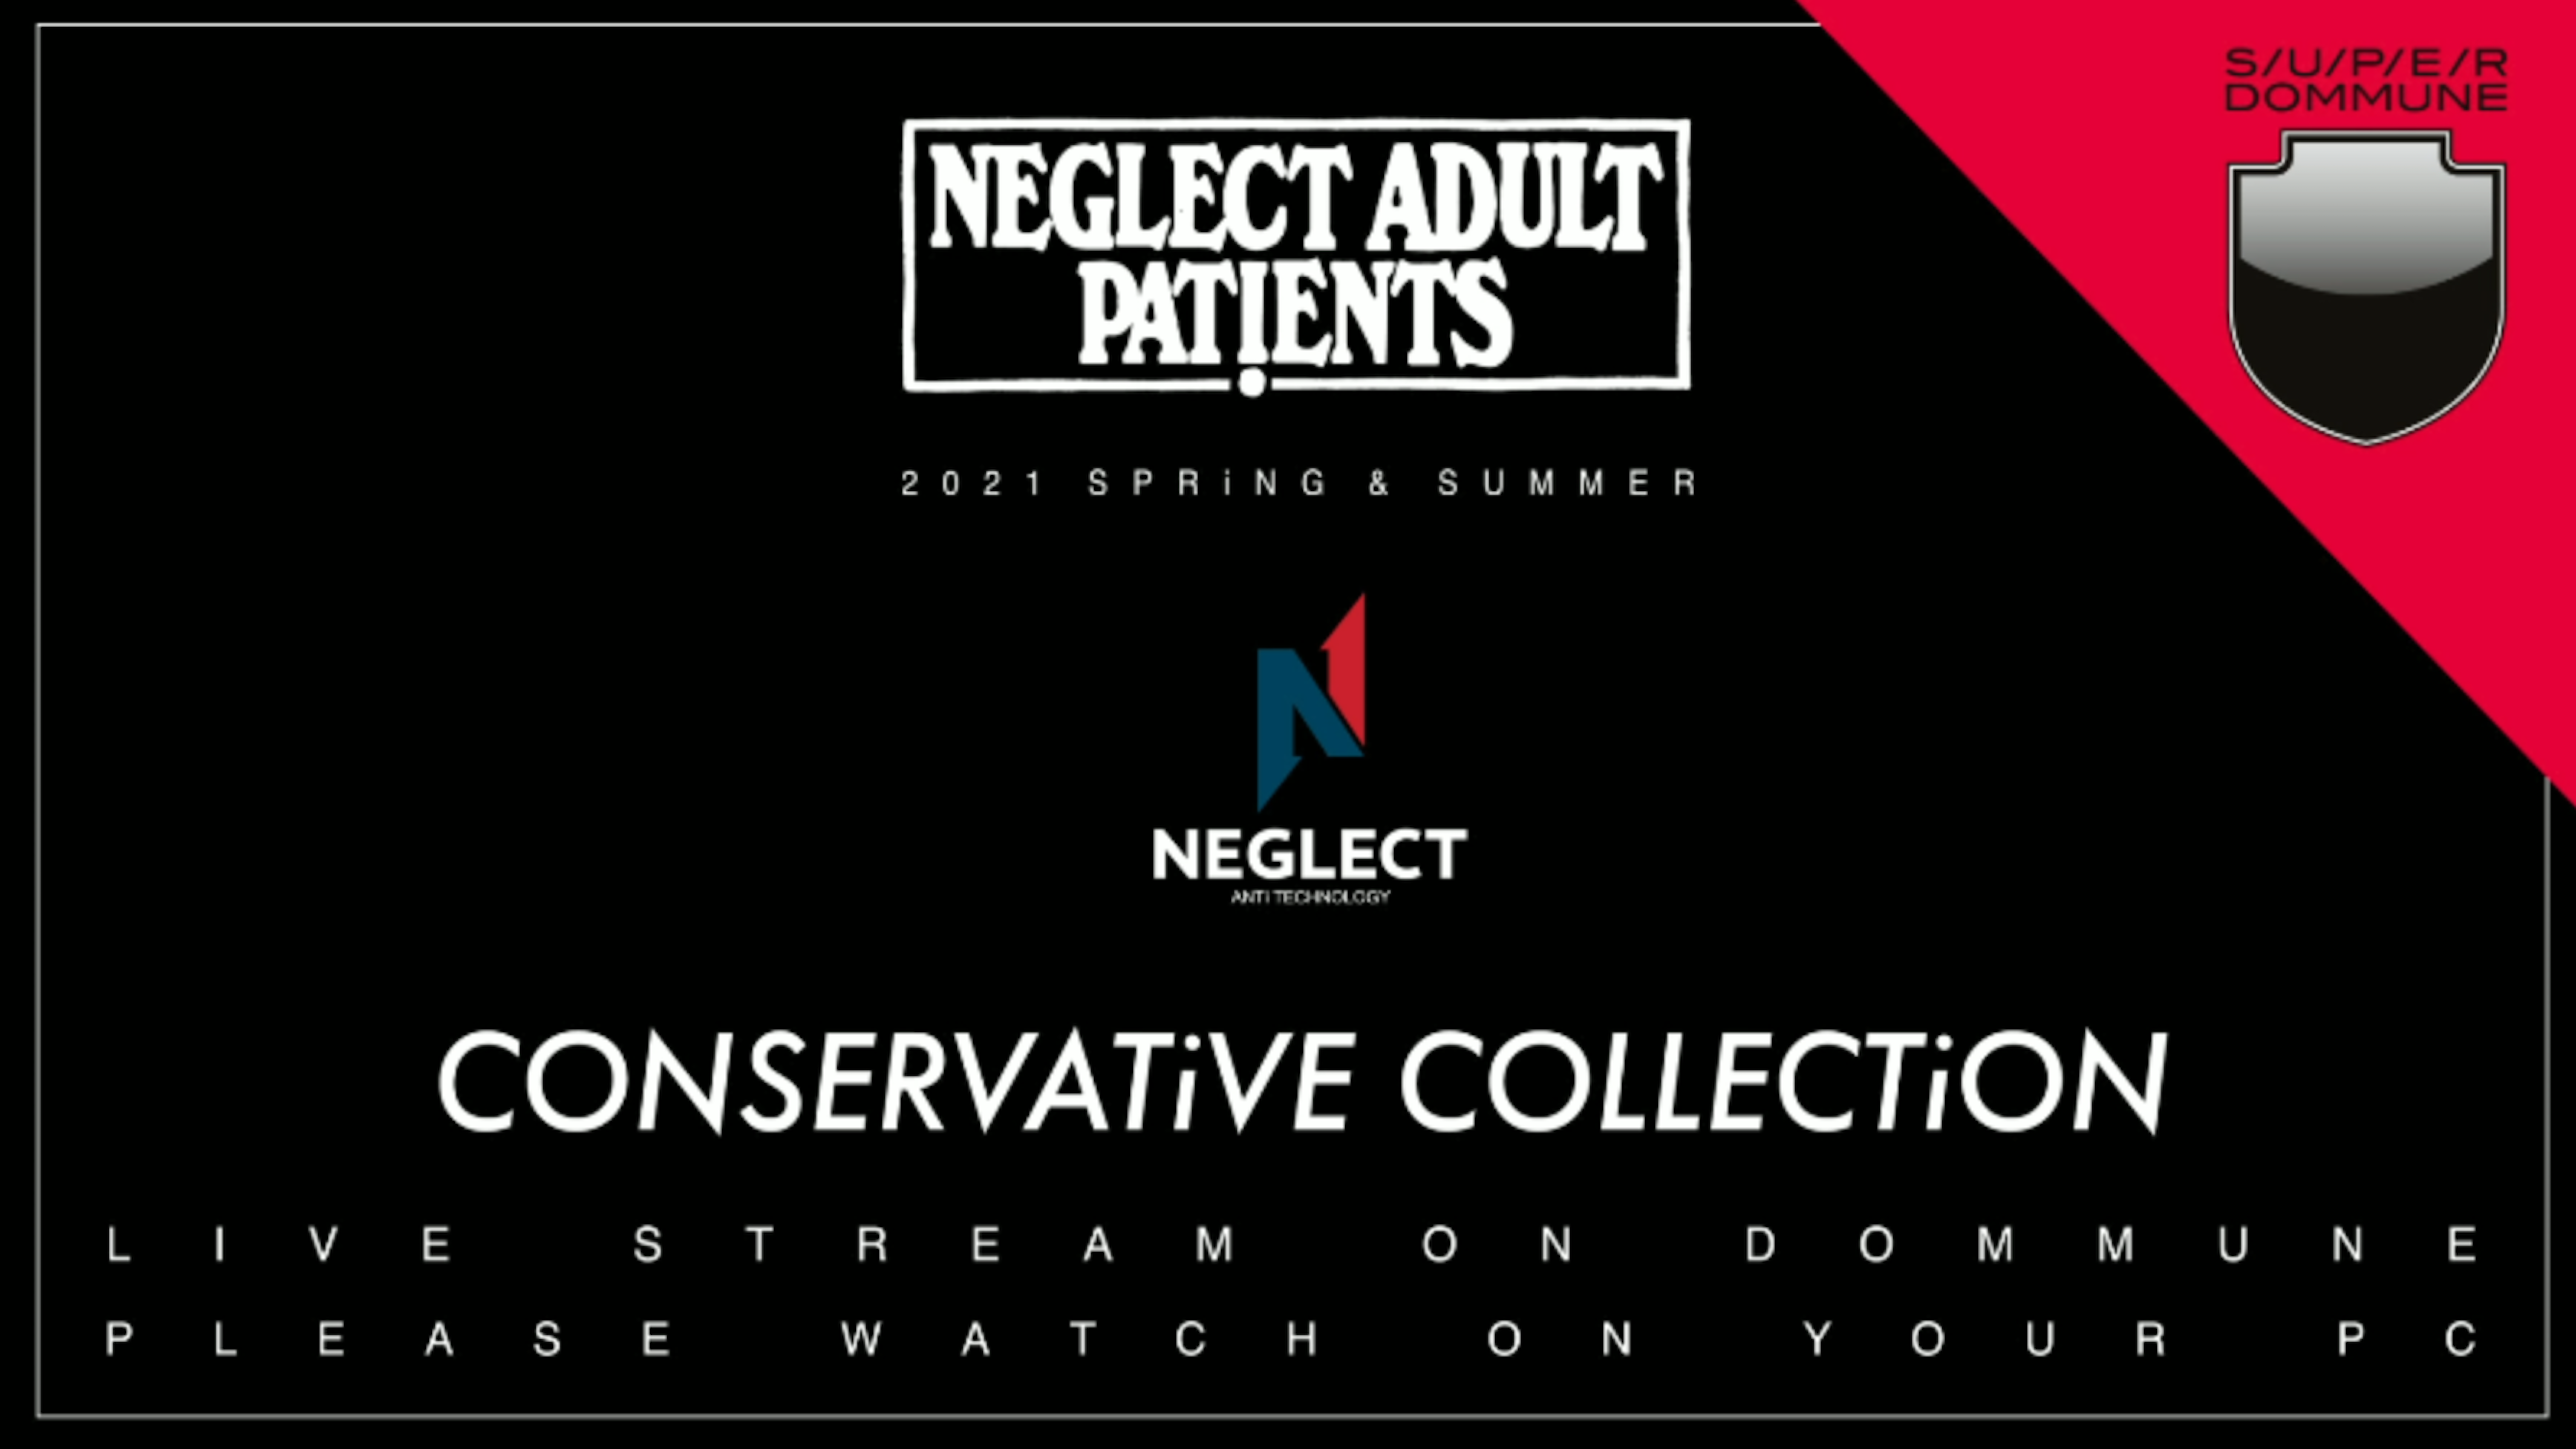 NEGLECT ADULT PATiENTS SS2021